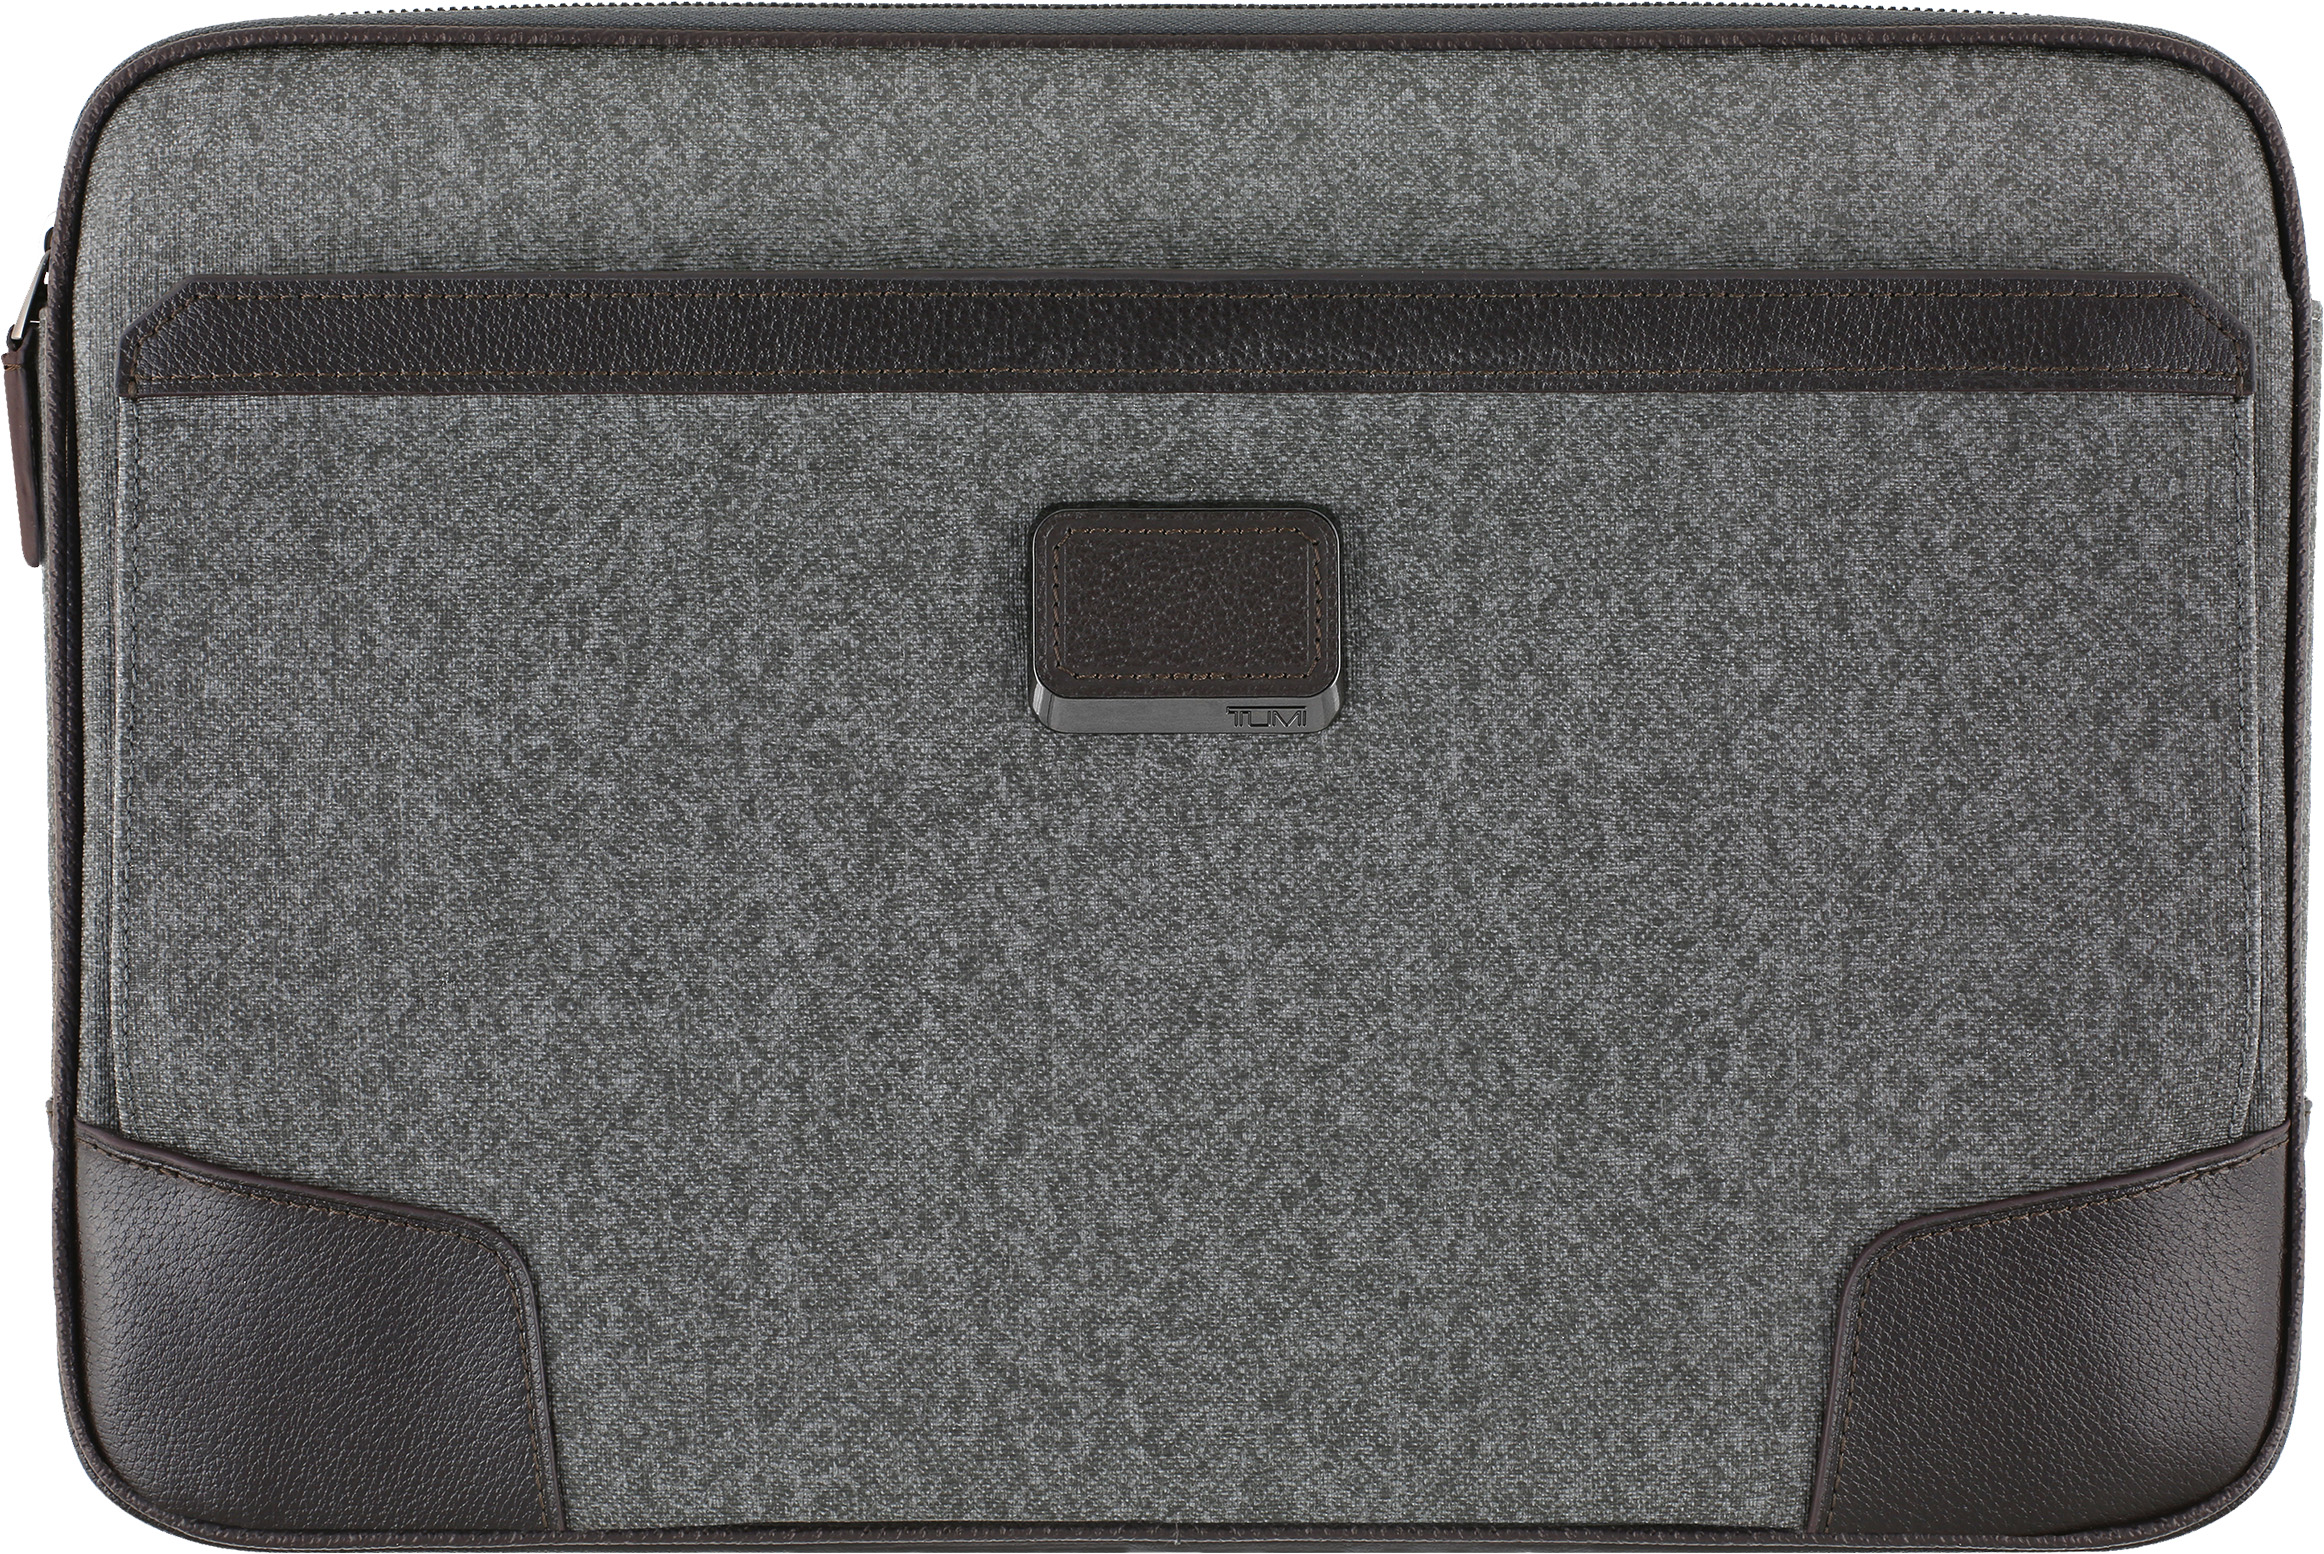 TUMI Coated Canvas Tablet Cover for Surface Book (Gray/Brown)